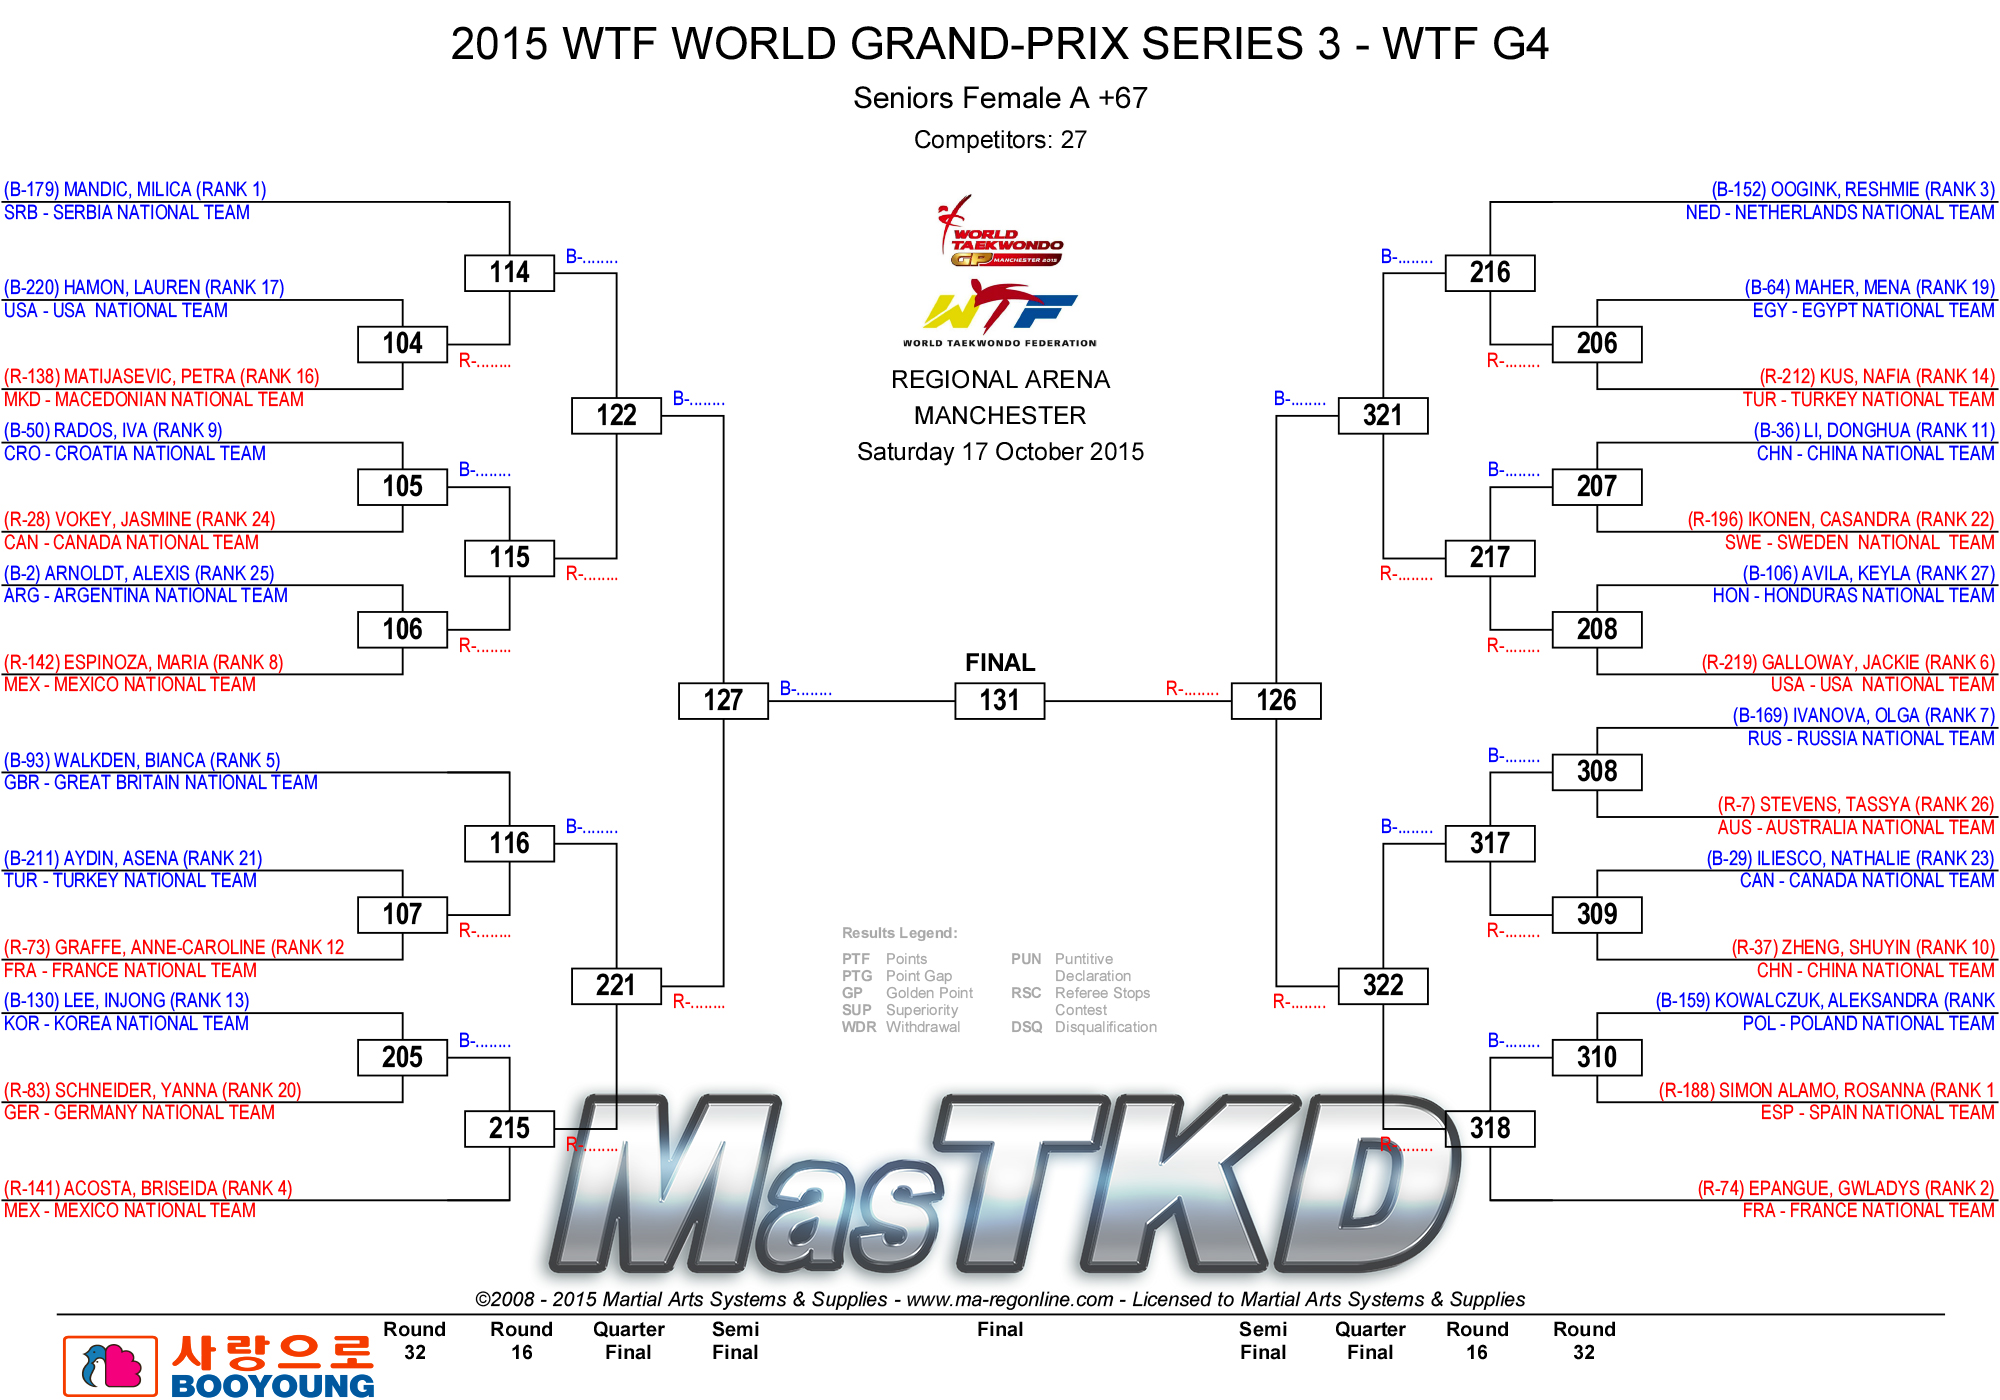 Fo67_2015_WTF_WORLD_GRAND-PRIX_SERIES_3_DRAW_D2